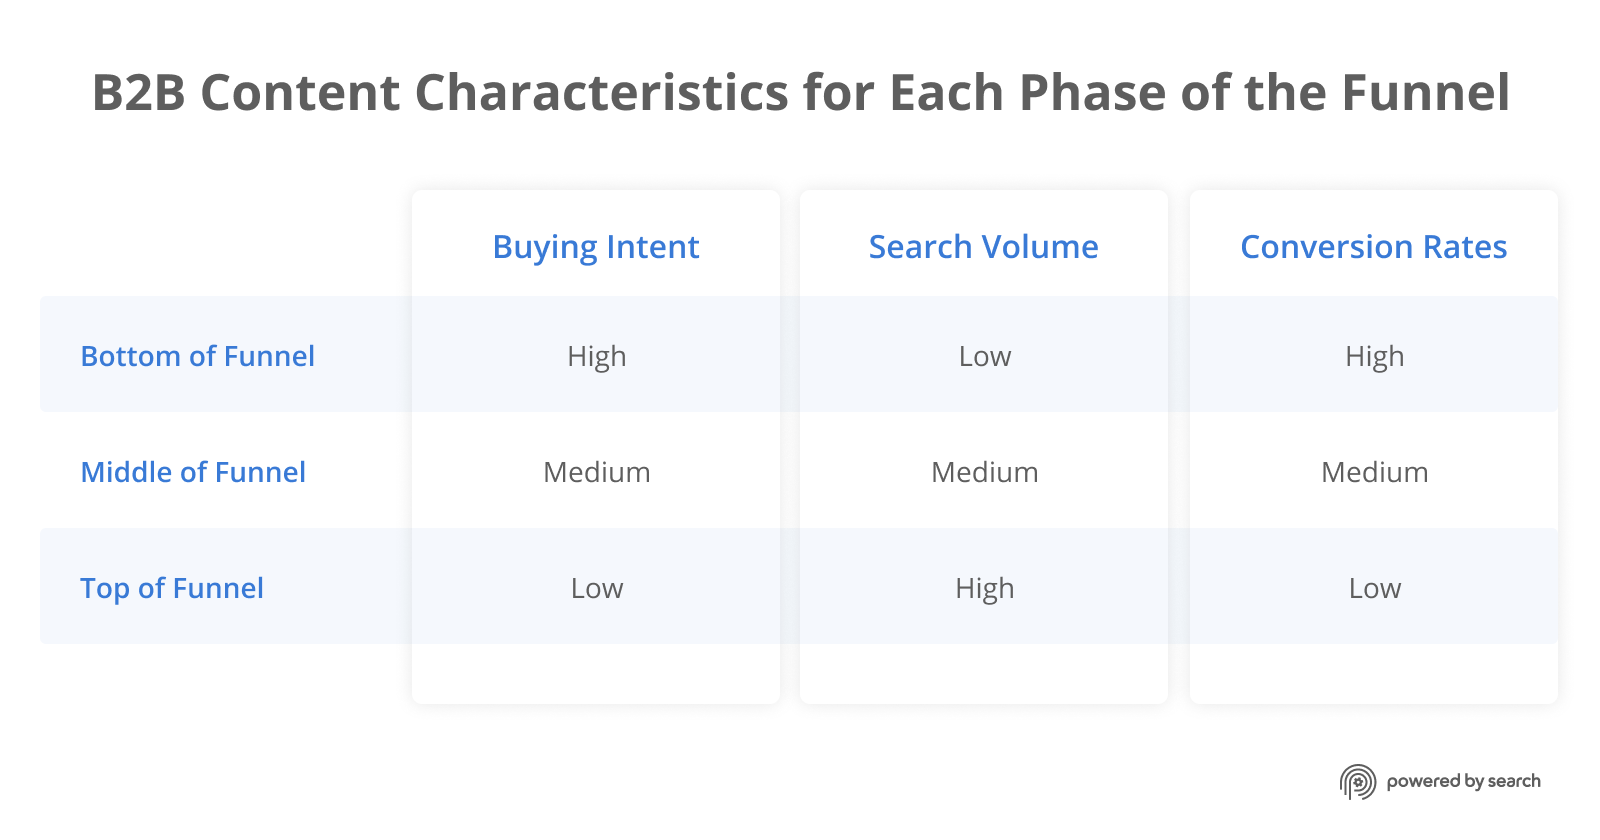 B2B Content Characteristics for Each Phase of the Funnel